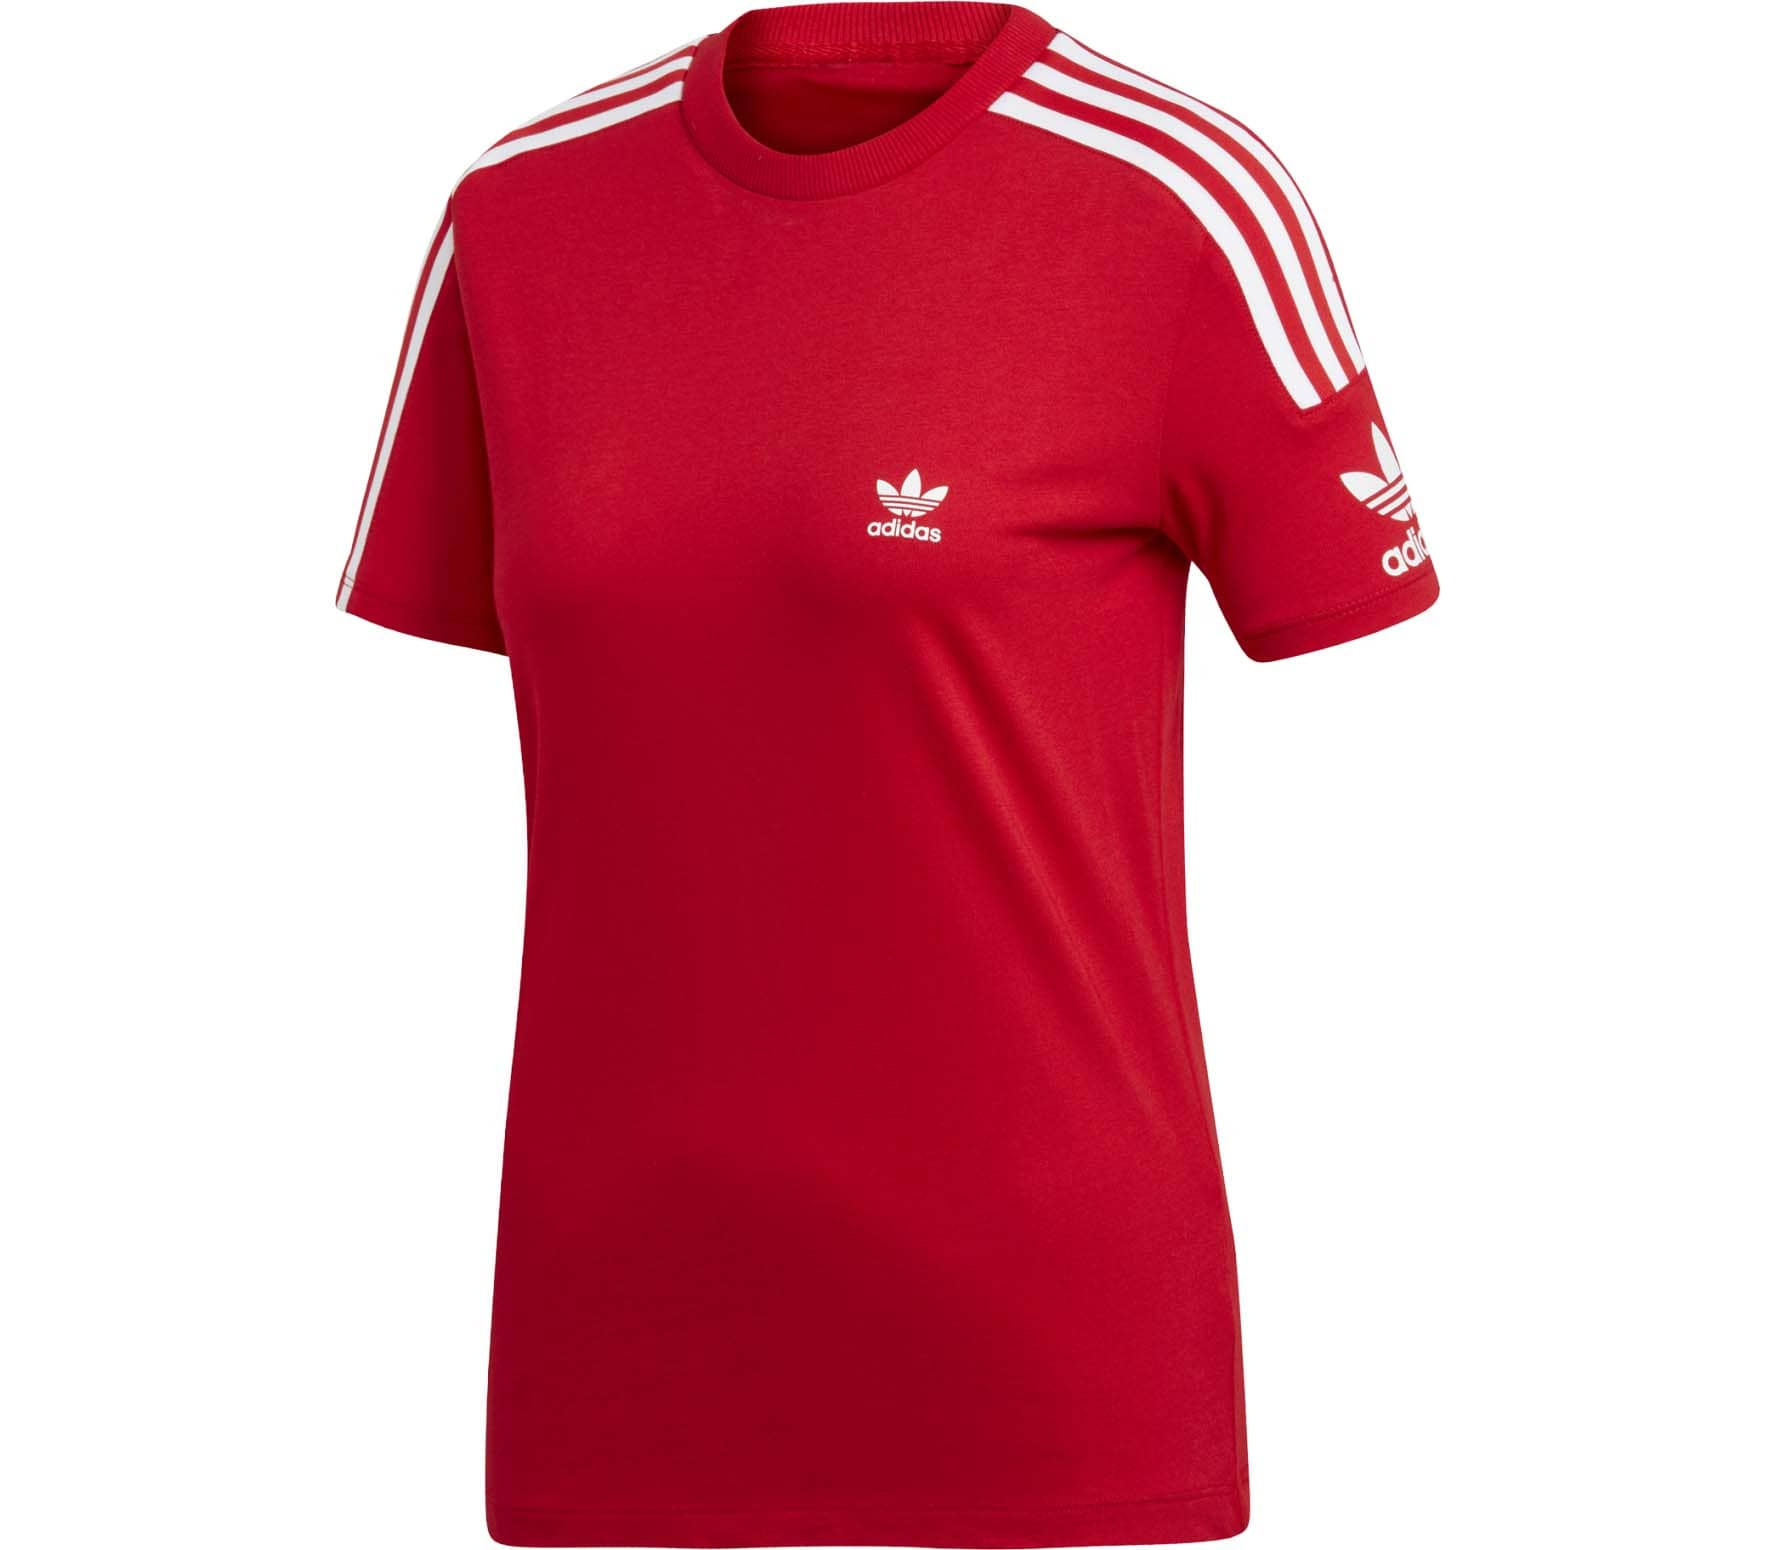 3-Stripes Women T-Shirt